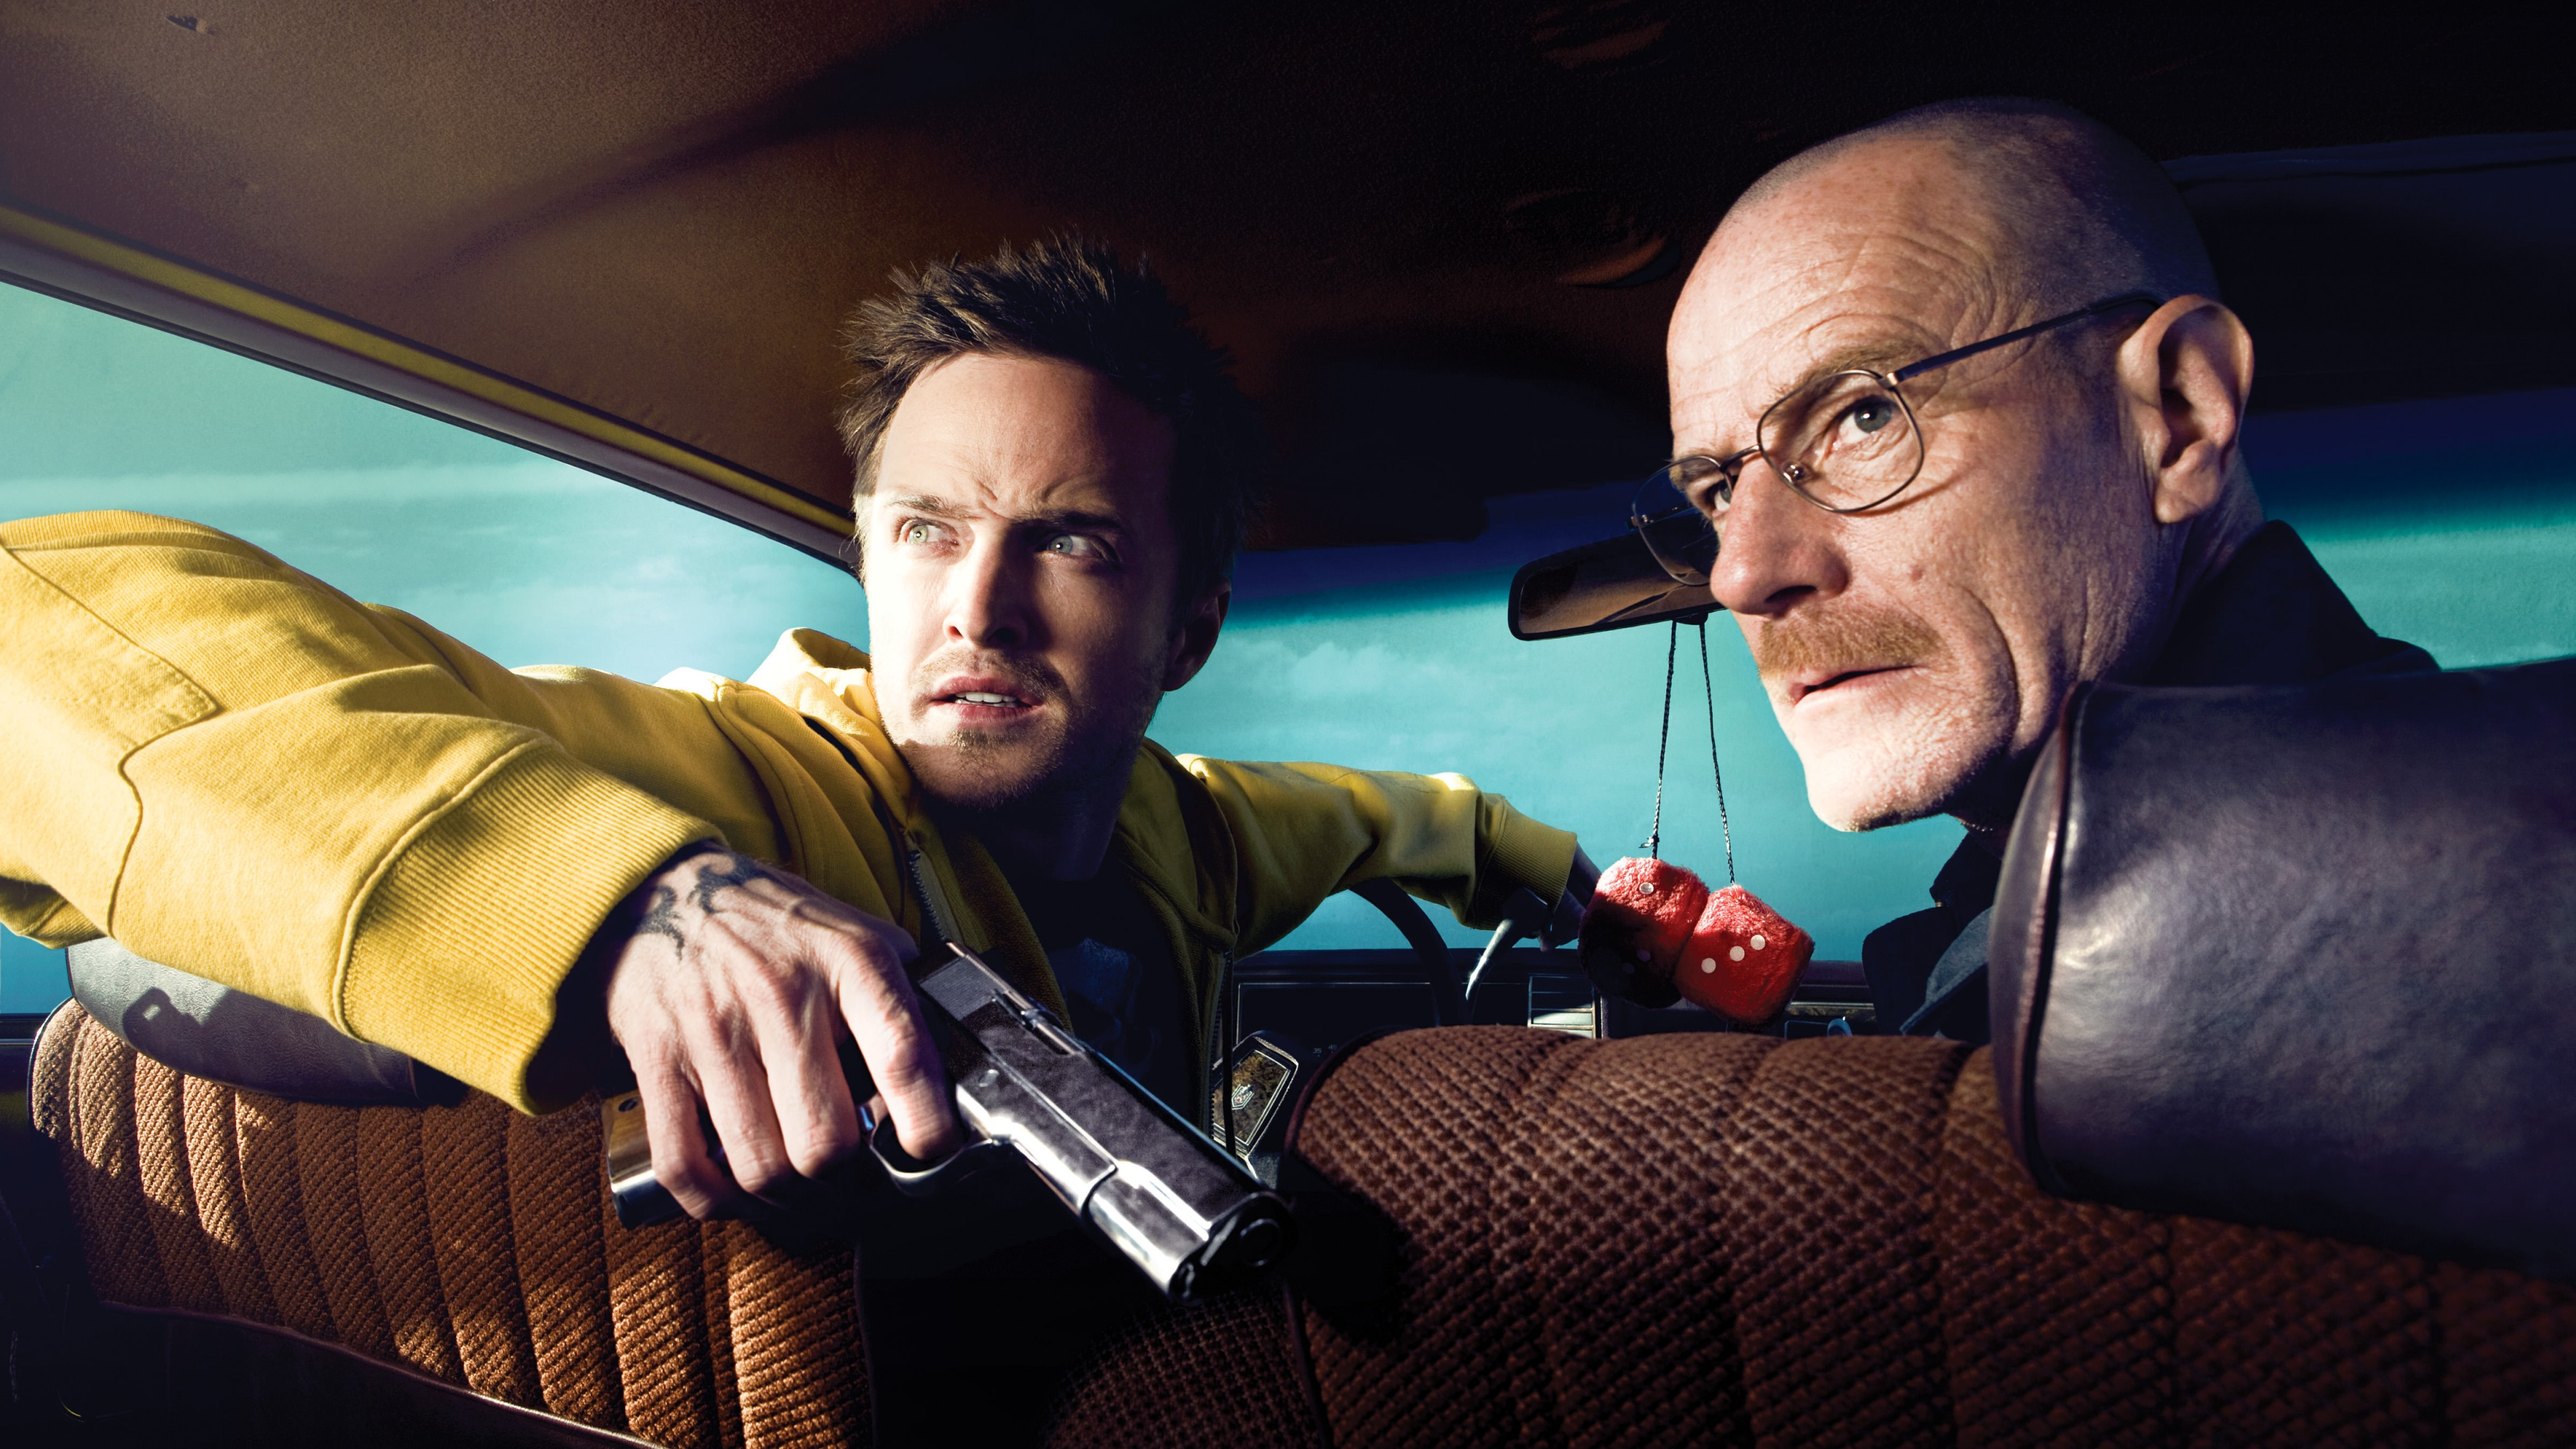 Breaking Bad - Jesse Pinkman and Walter White wallpaper